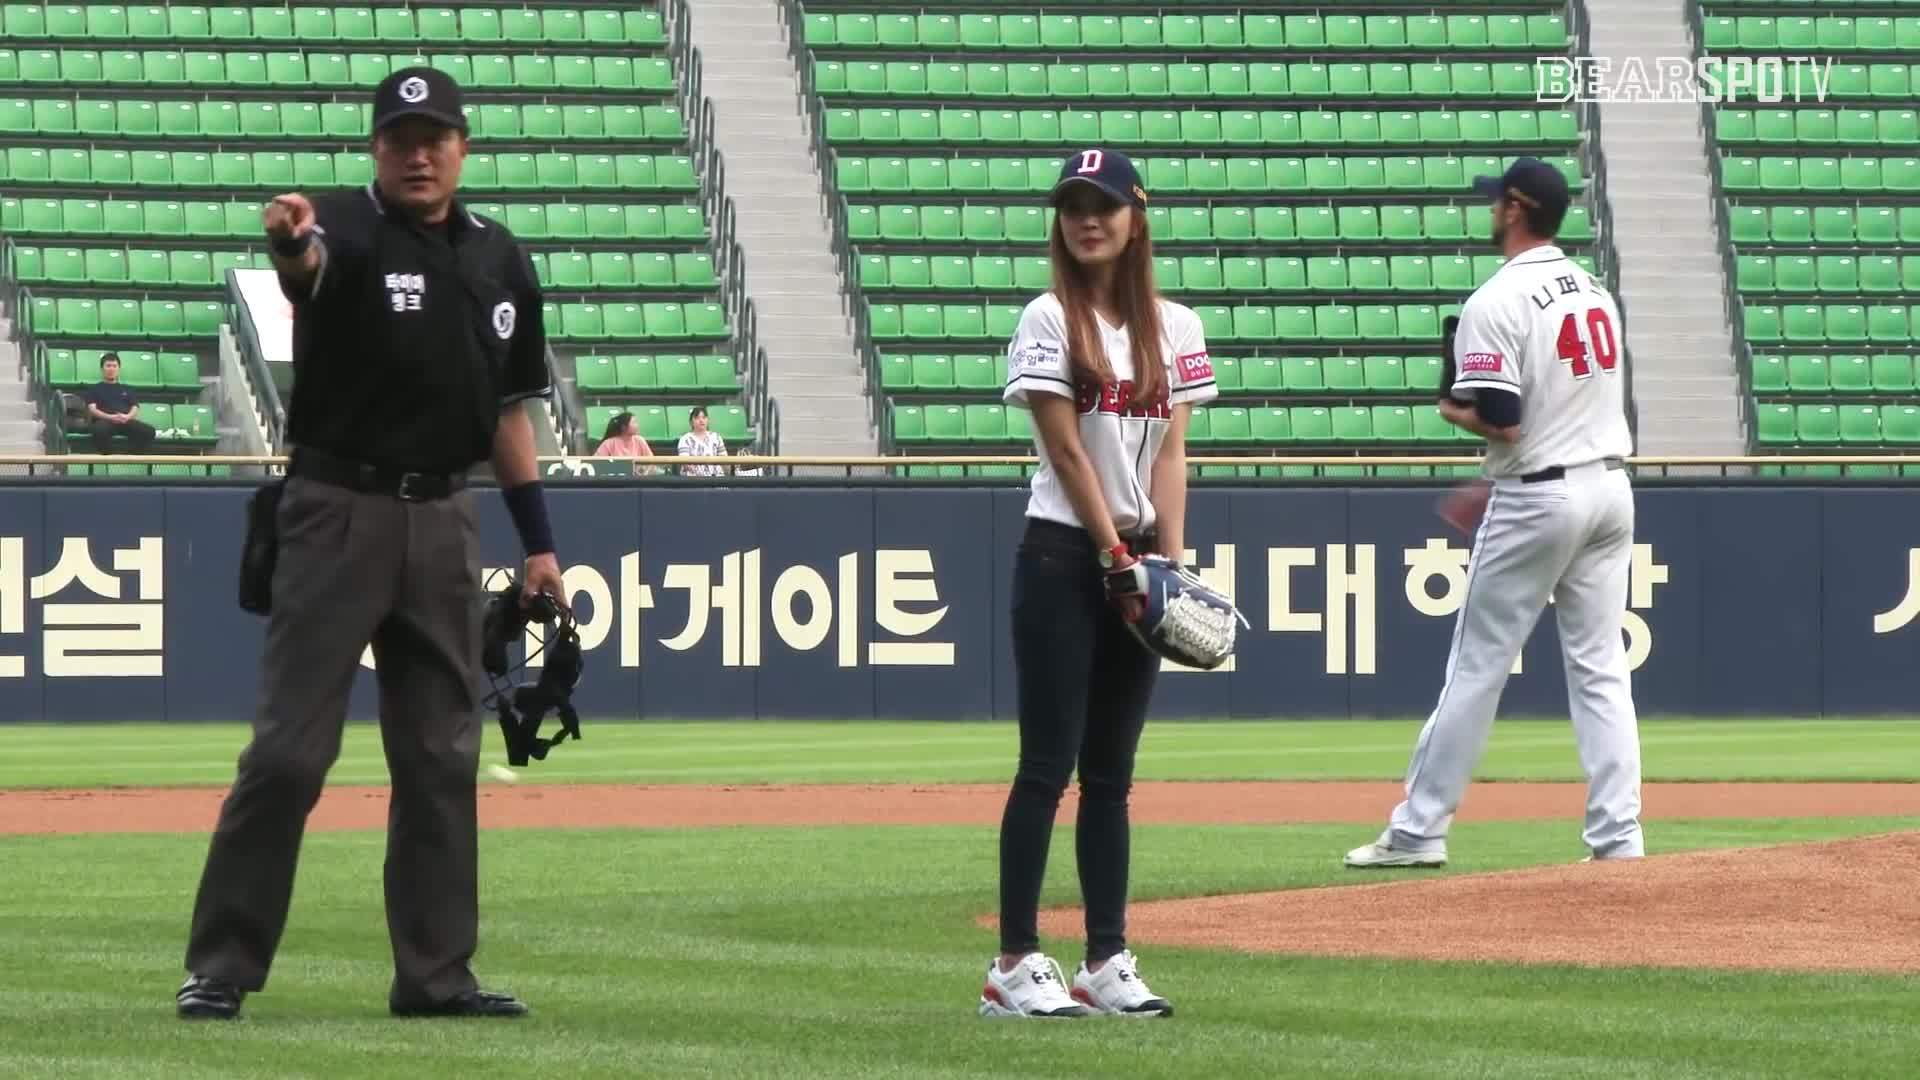 Gif, Japanese, Hot, Sexyashell, Sexy, Sexybody, Girl, Sport, Baseball, Wow, Uniform, Sport, Nonude, Crazy